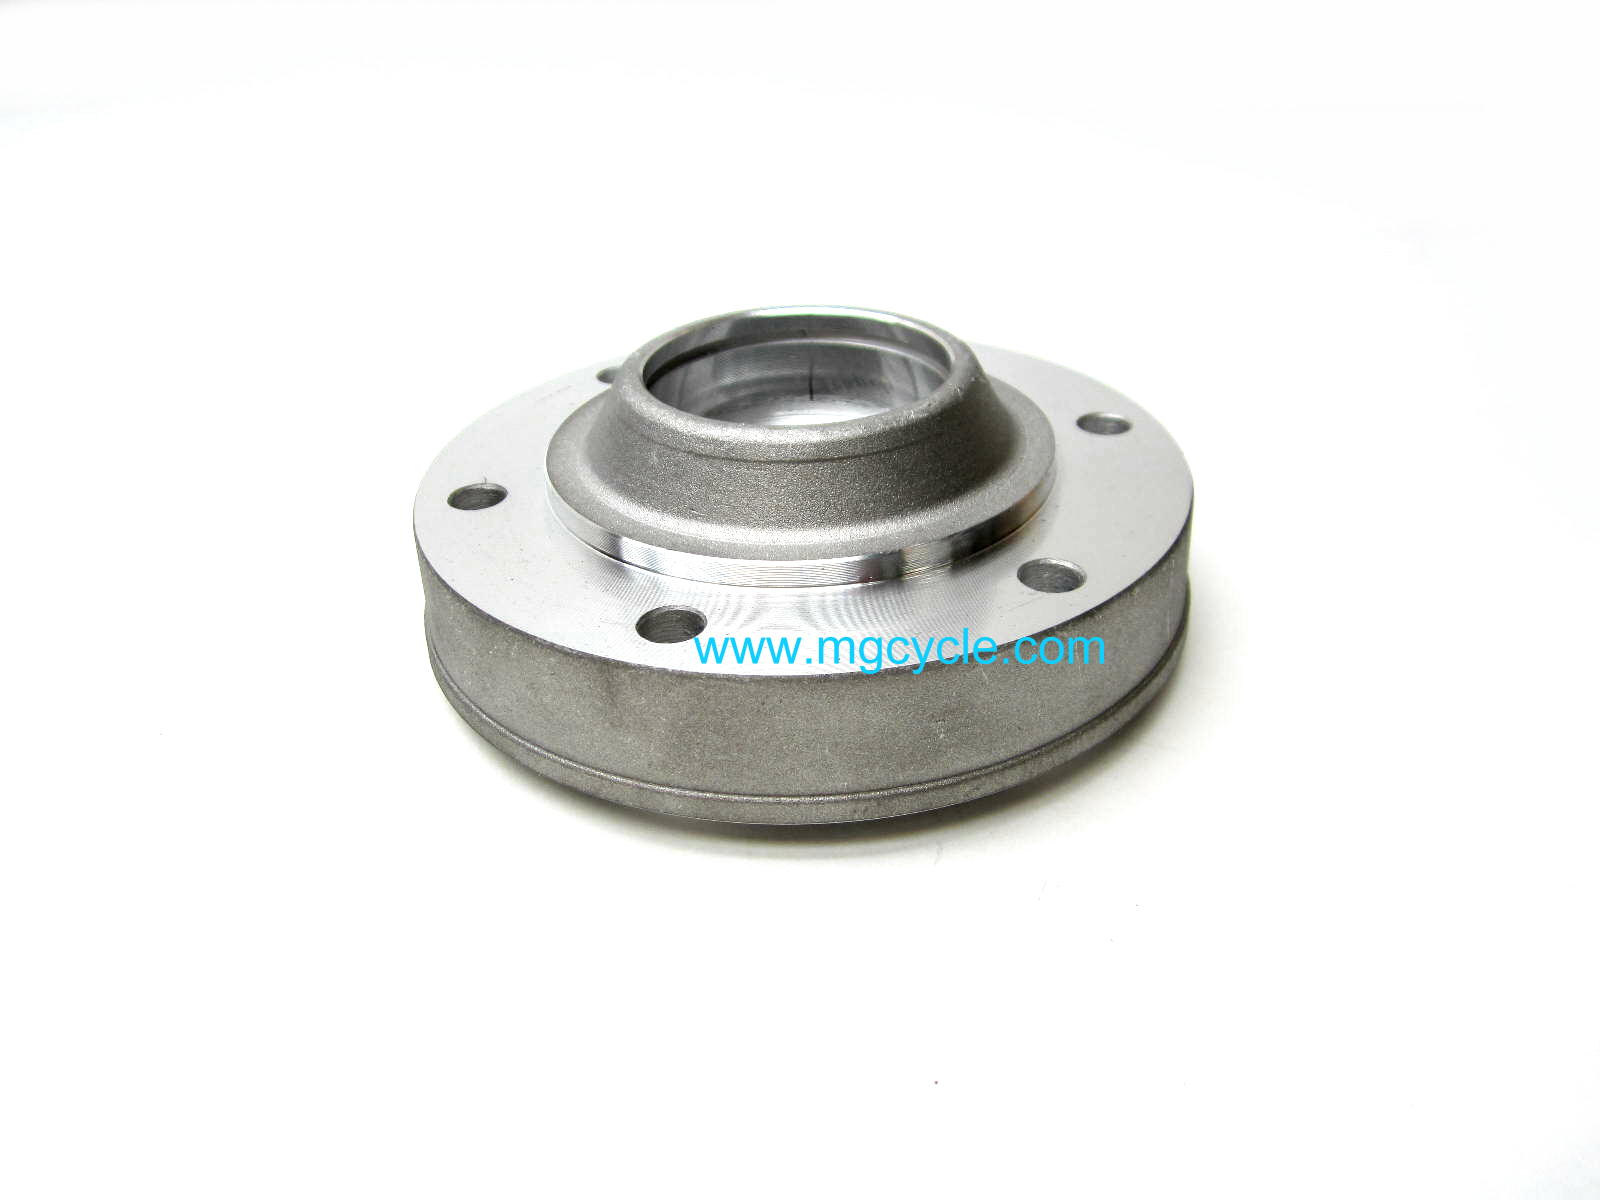 wheel flange, brake & bearing carrier V7 Sport 750S 850T T3 G5